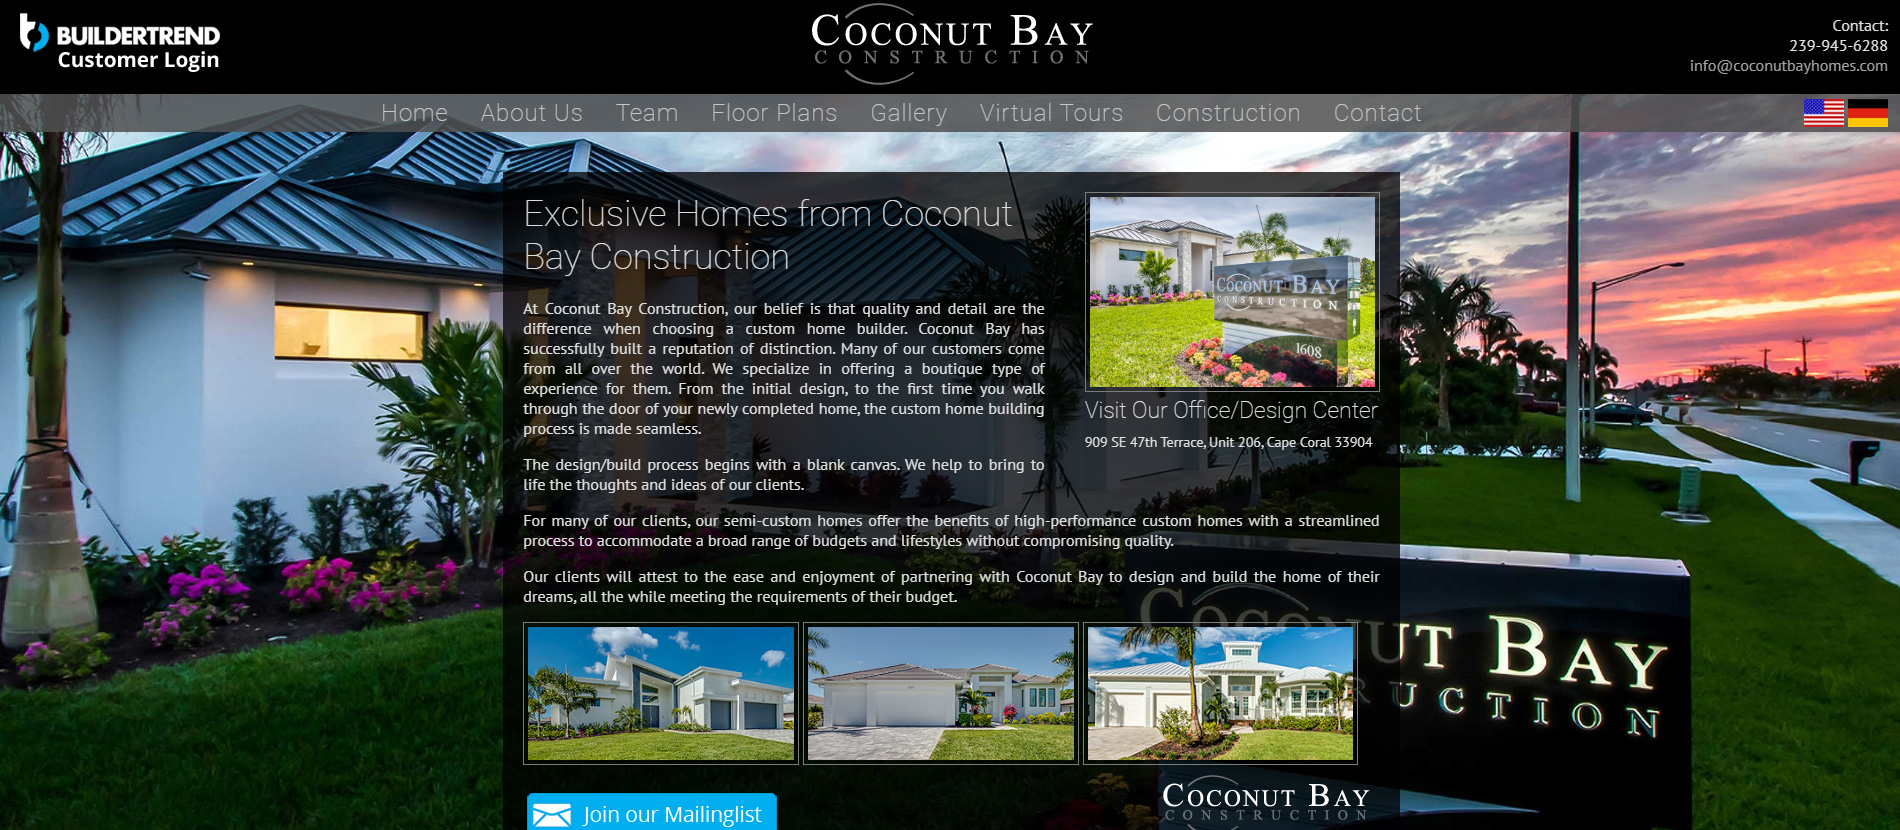 Coconut Bay Construction